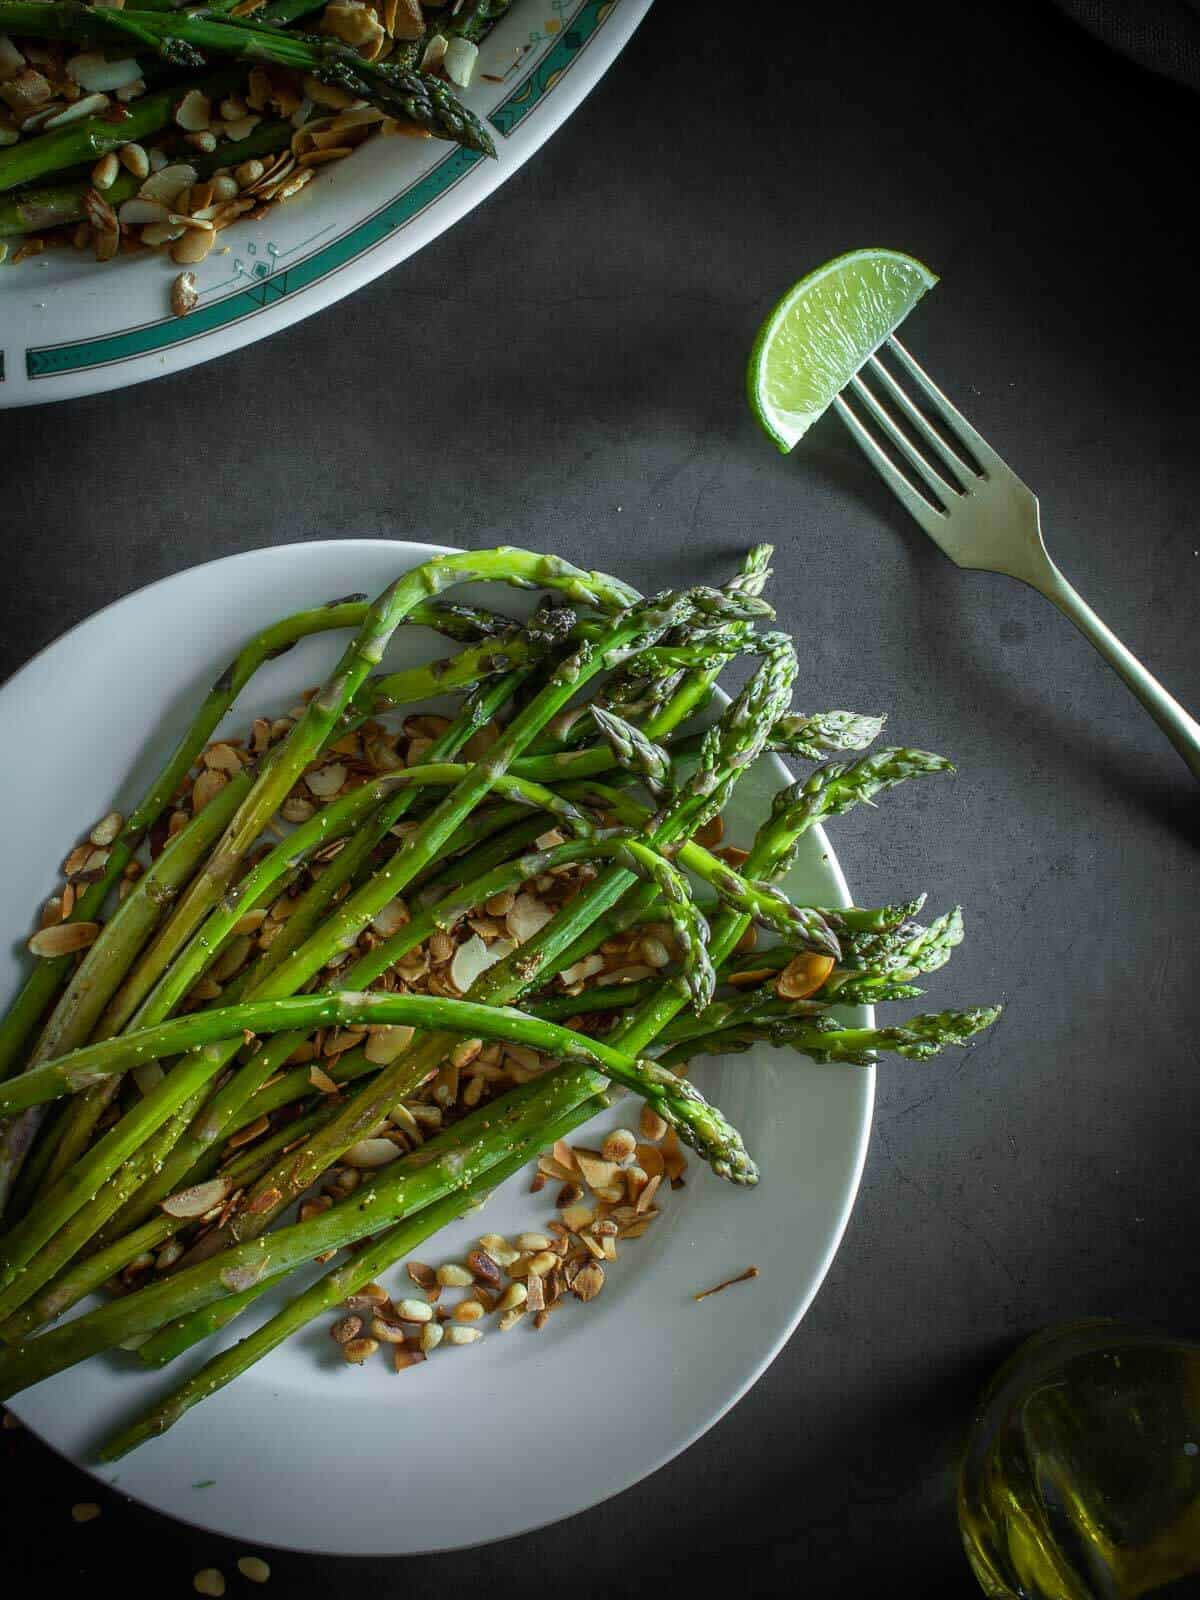 Grilled Asparagus with lemon wedge